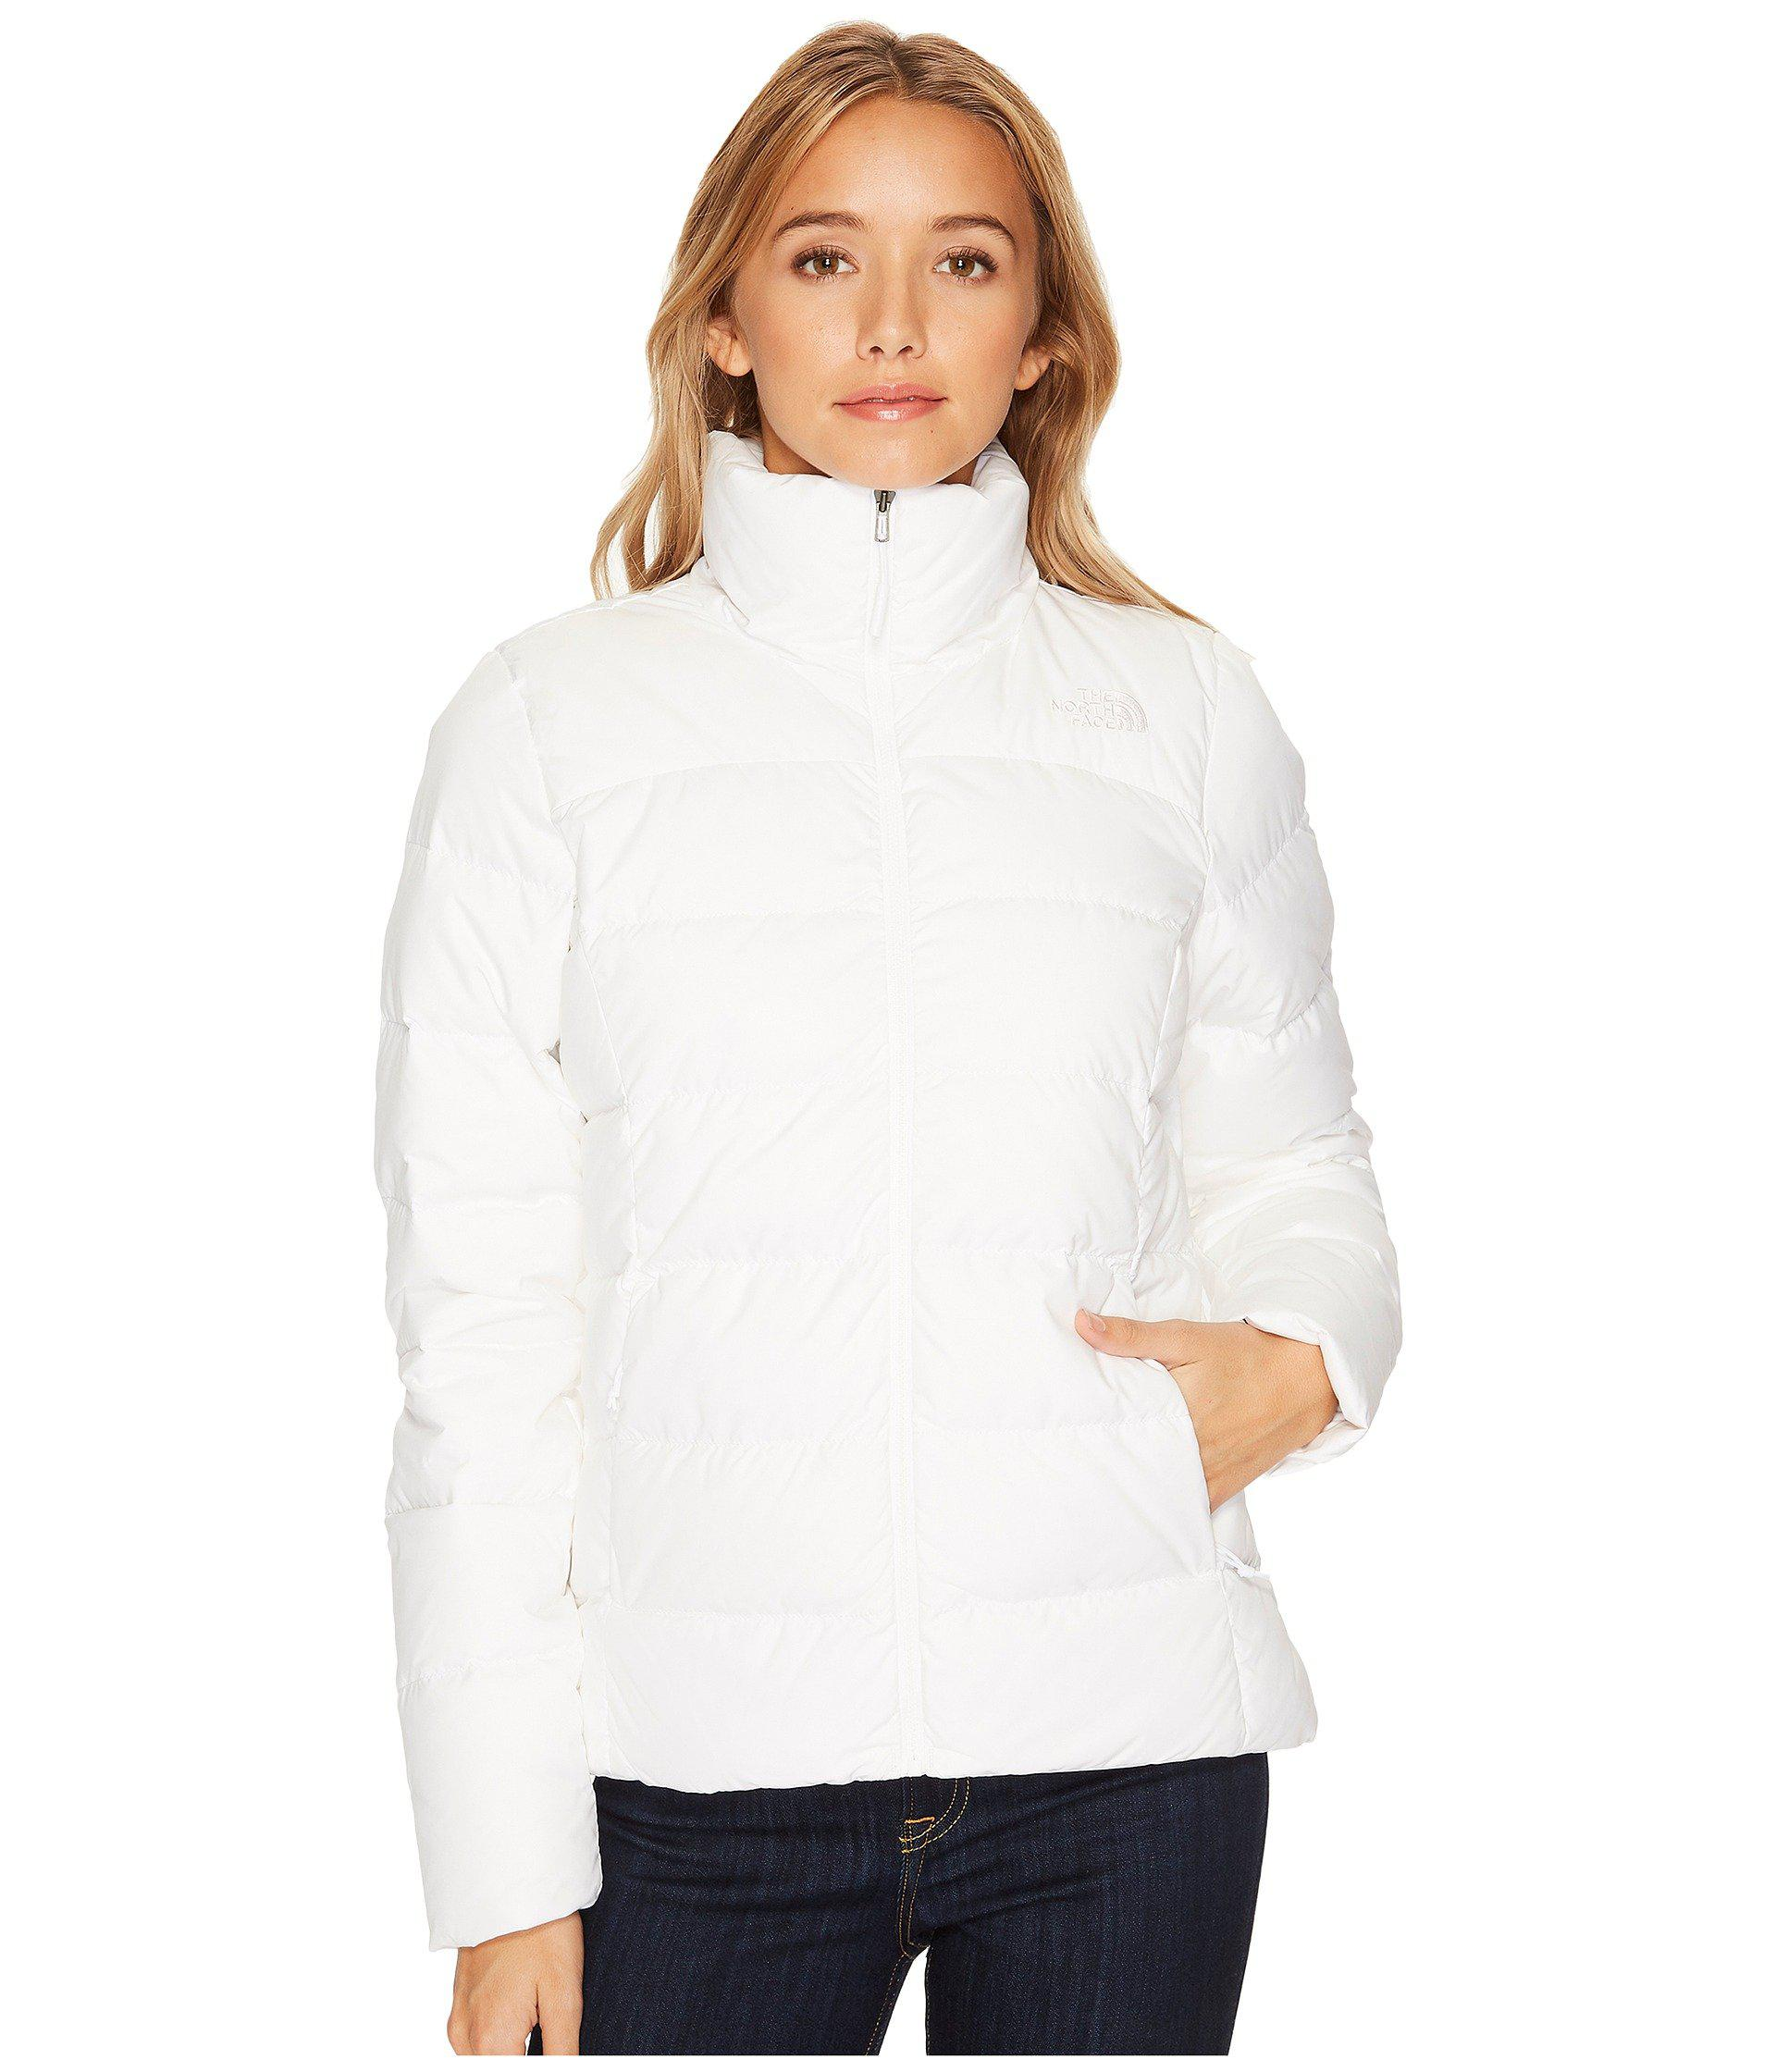 Lyst - The North Face Nuptse Jacket (tnf White) Women s Jacket in ... e84215420